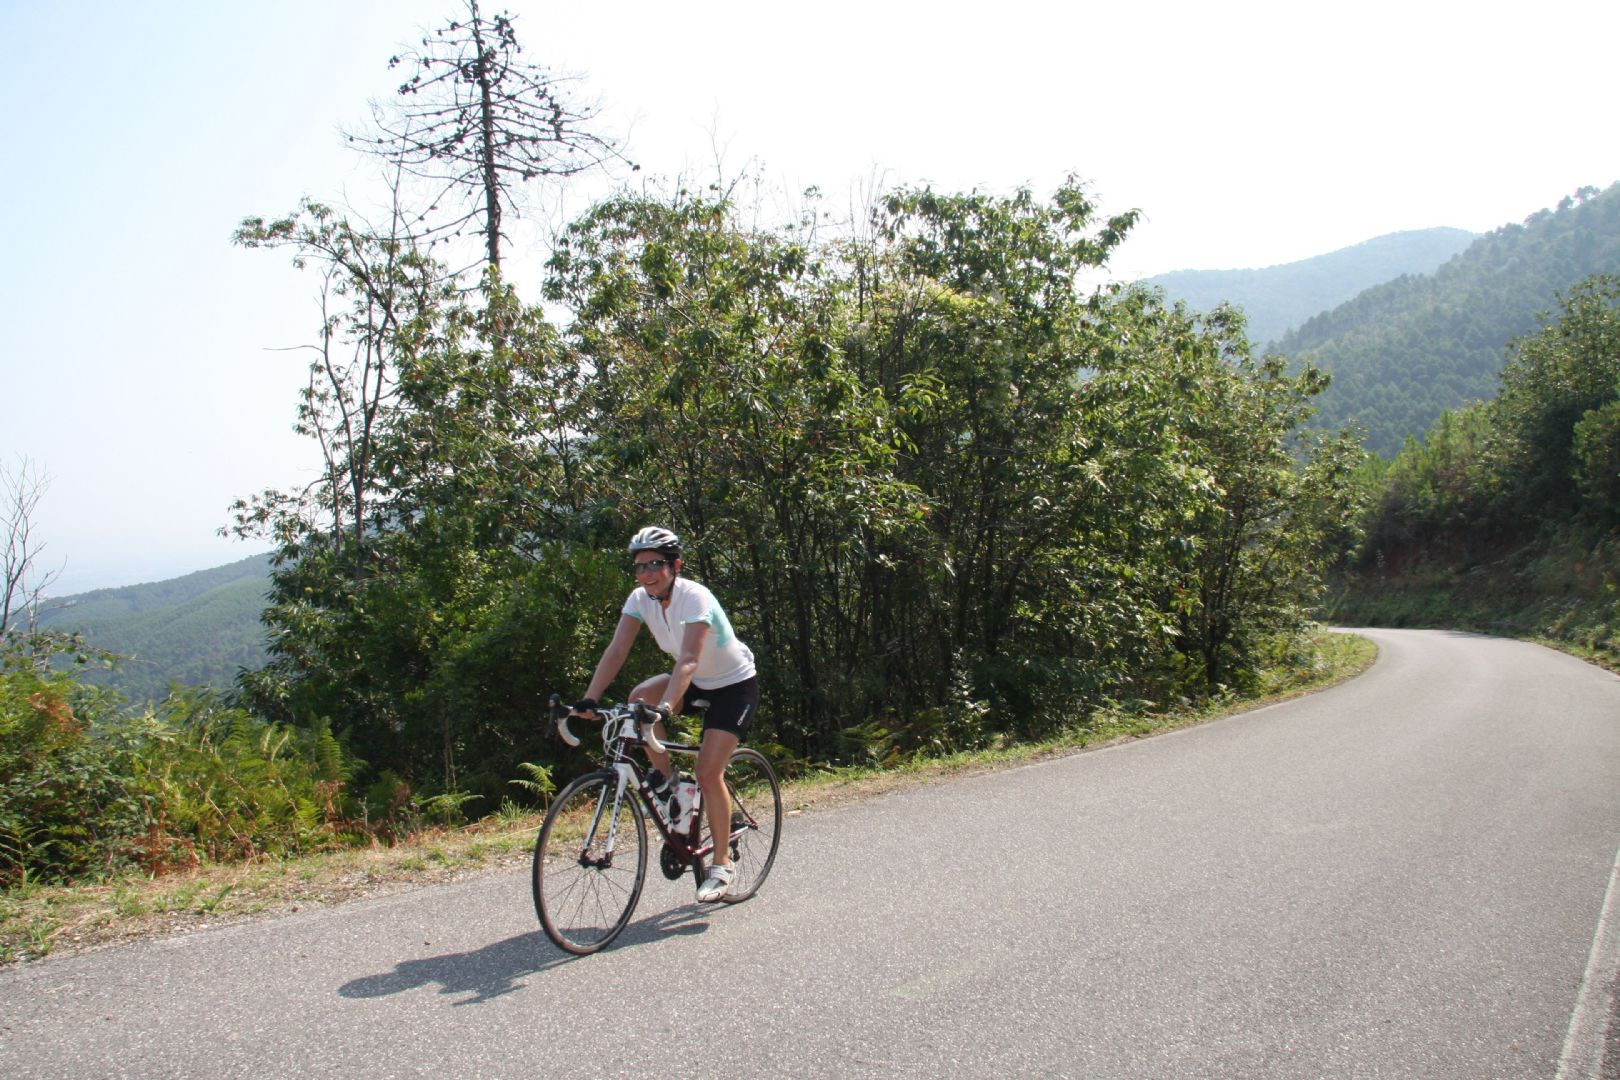 azores road2.jpg - The Azores - Lakes and Volcanoes - Self-Guided Road Cycling Holiday - Road Cycling